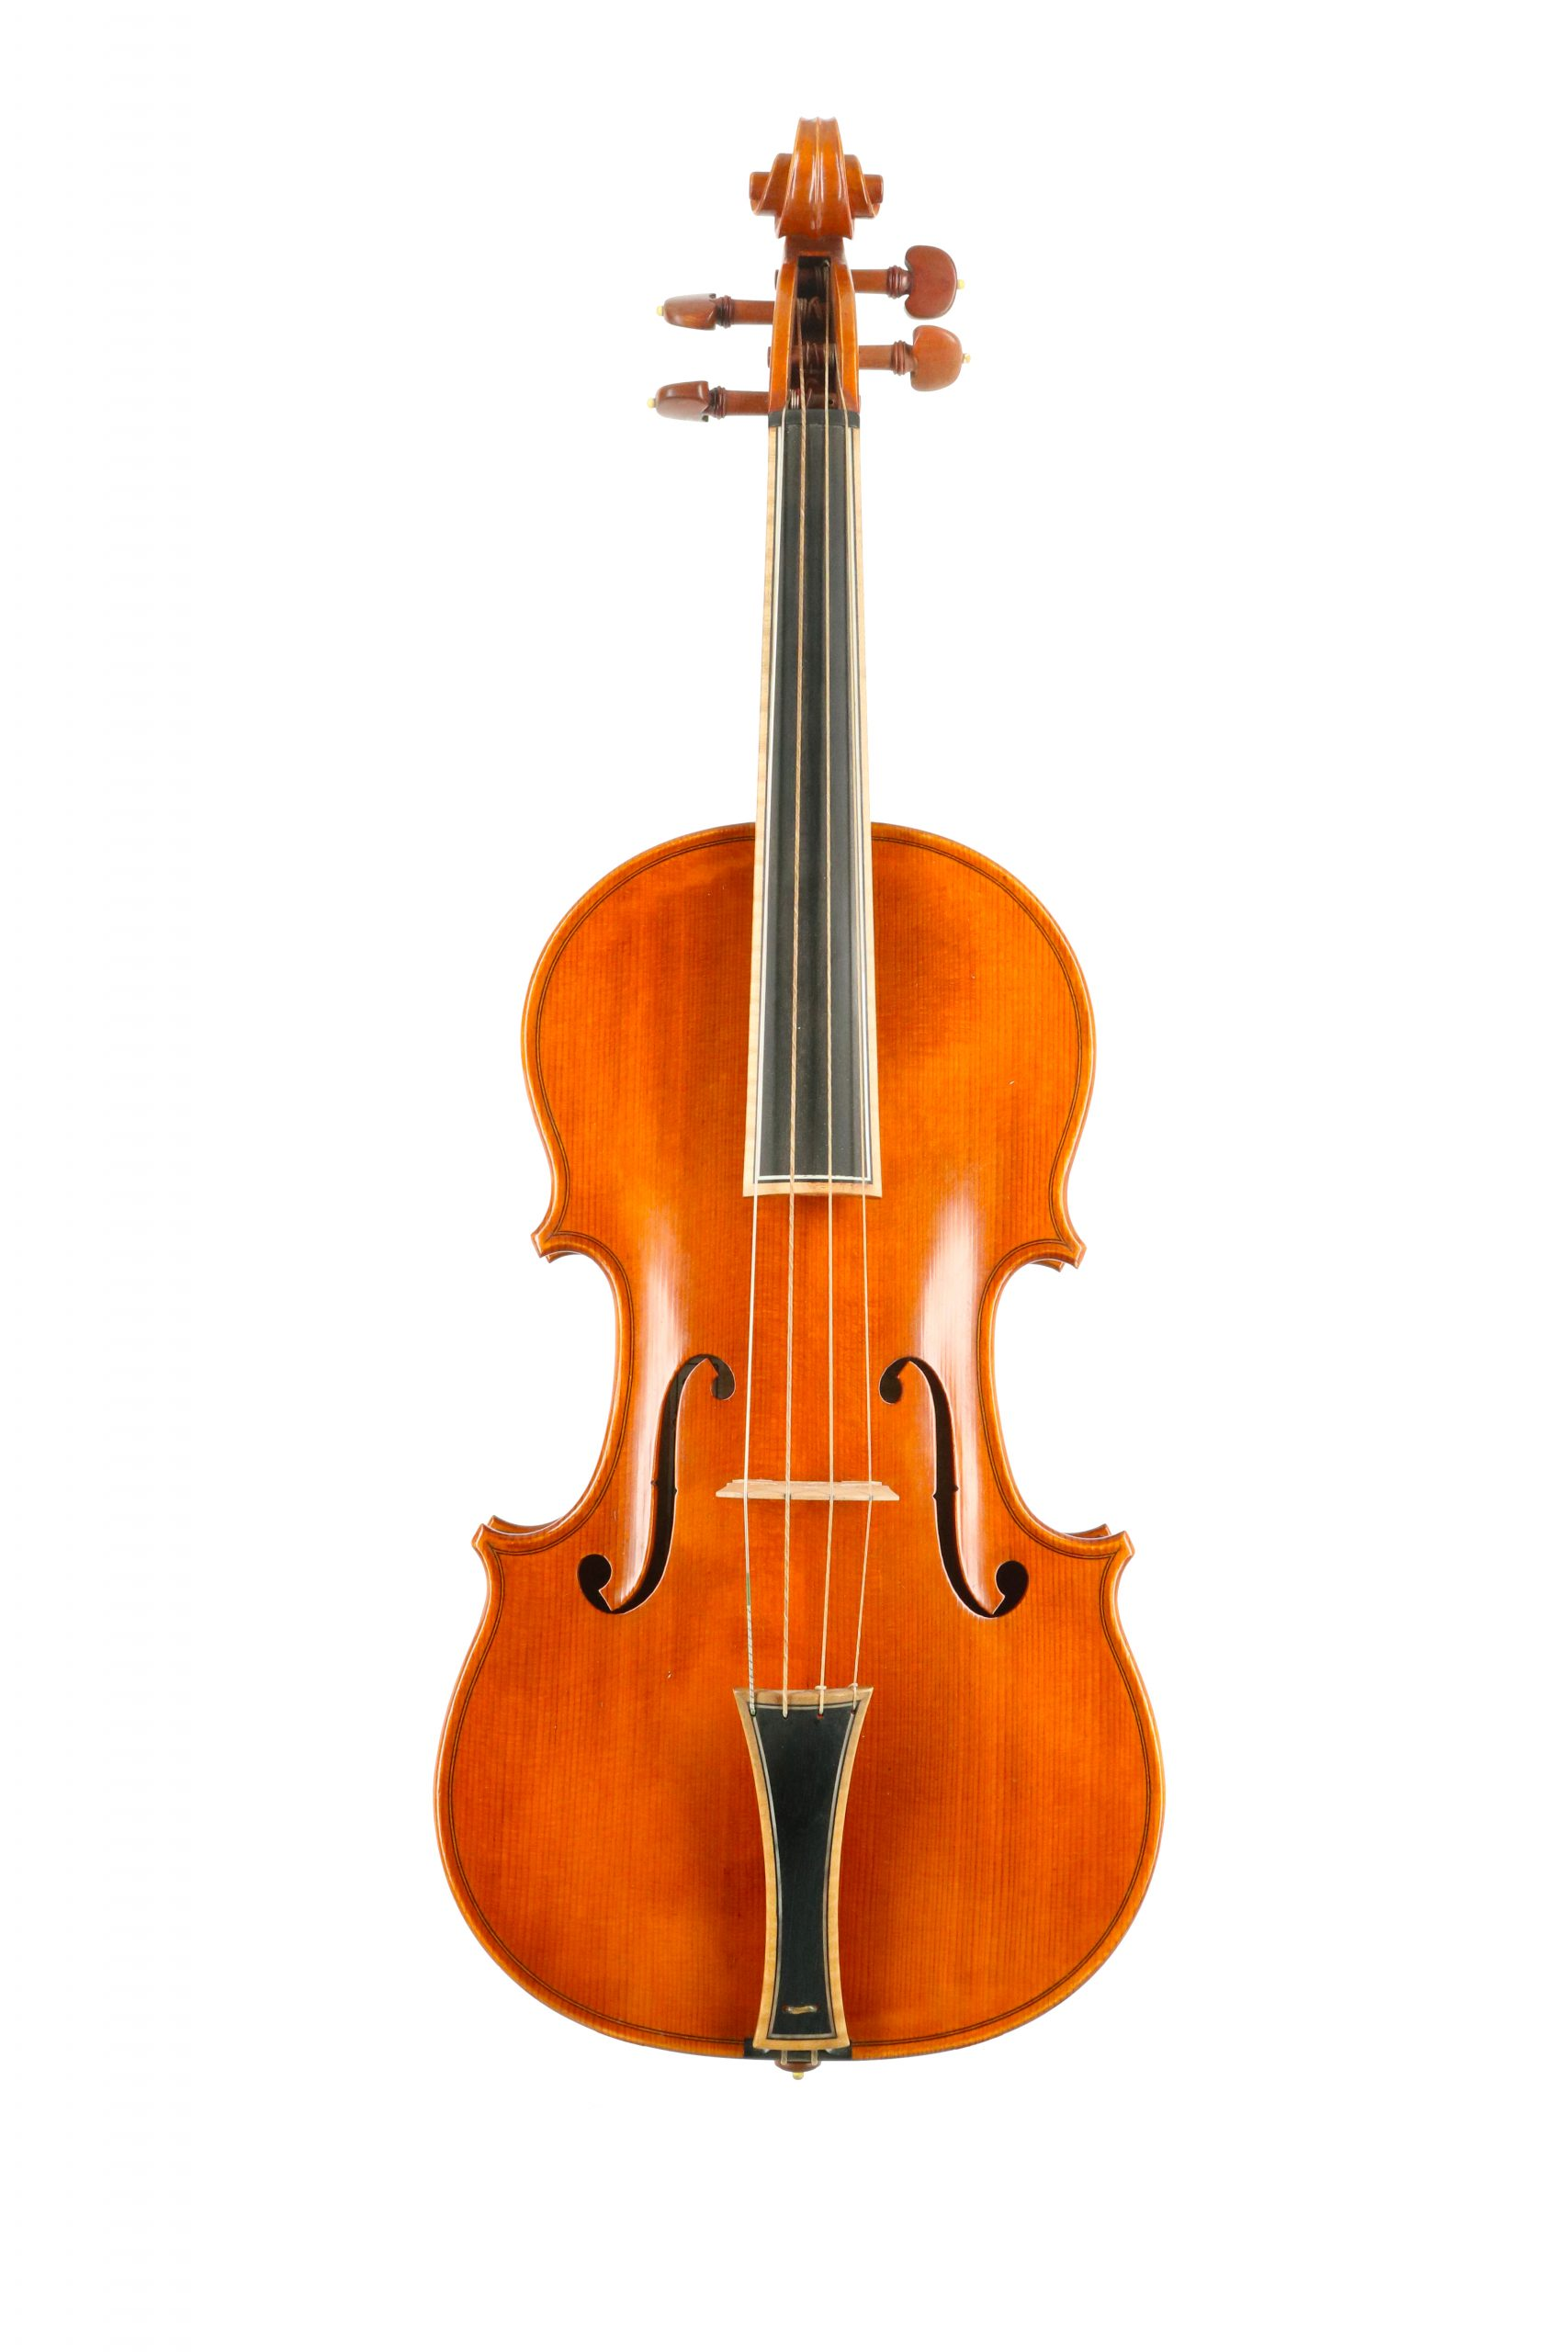 Fine baroque violin by Roger Hansell available for sale at Bridgewood and Neitzert London